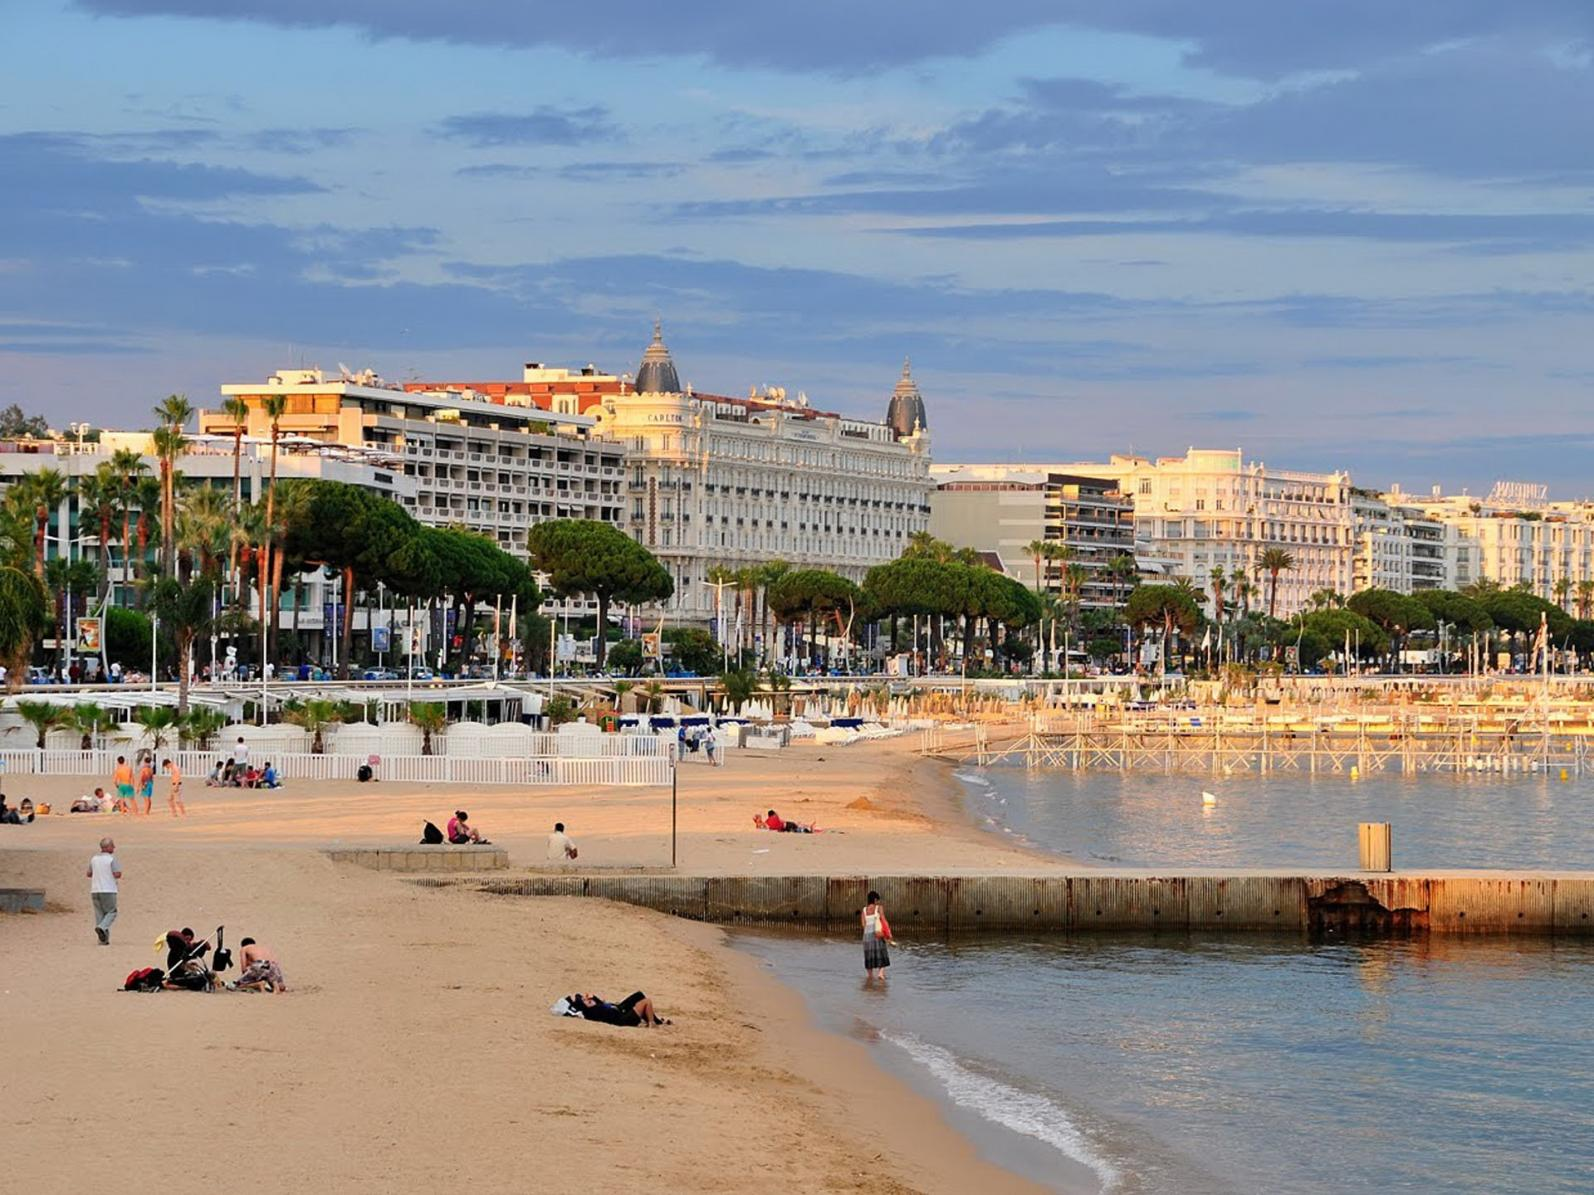 La Croisette: 10 mins walk from the apartment